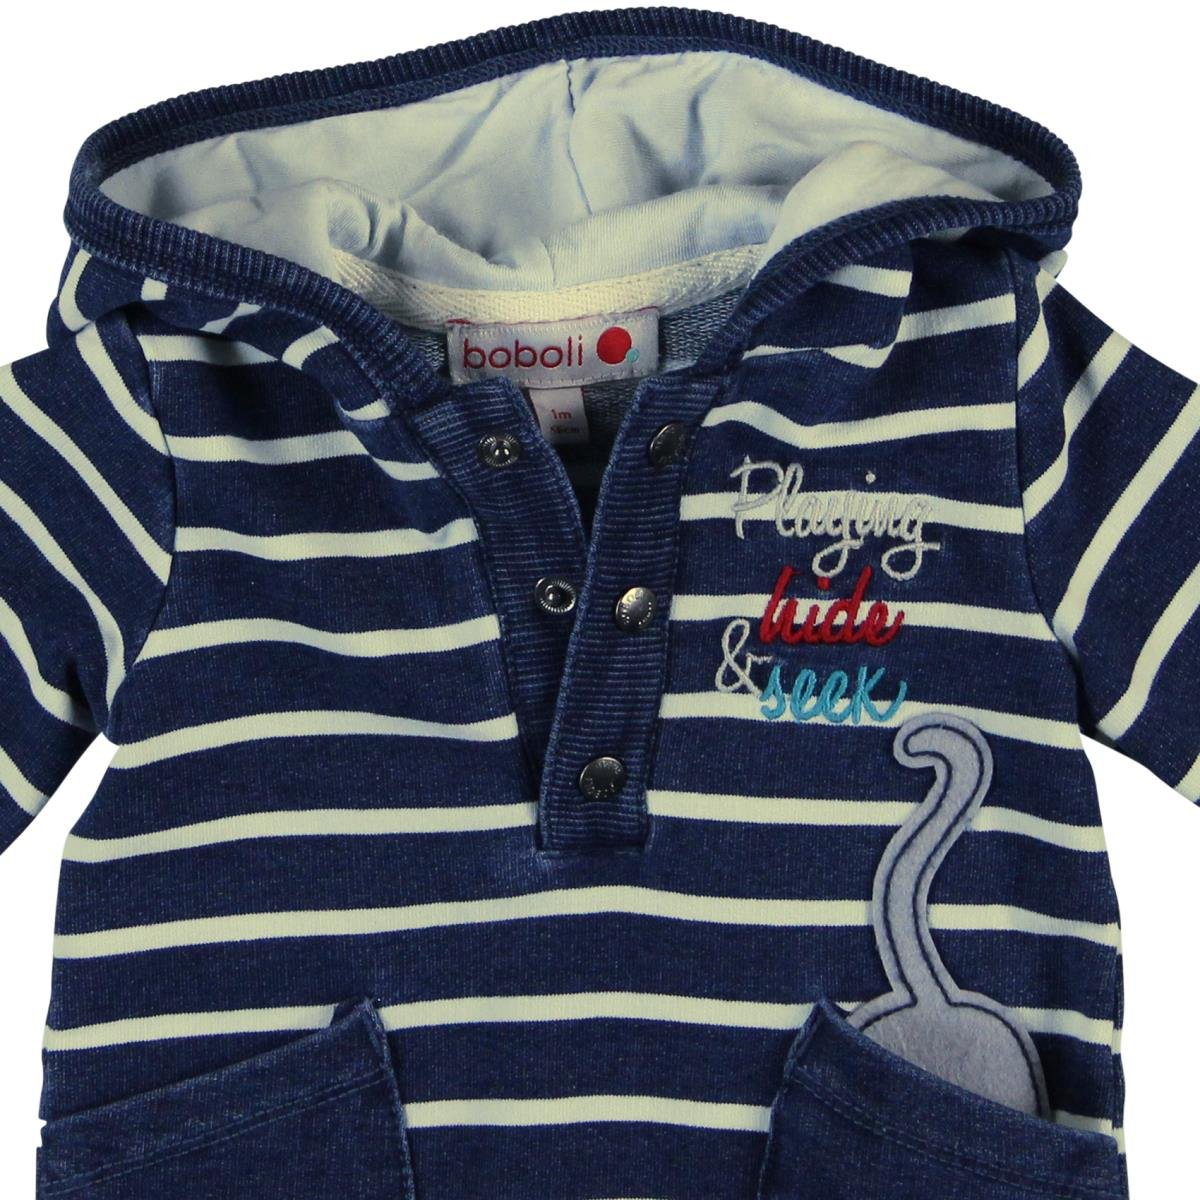 Boboli Unisex Spieler Fleece Play Suit Denim for Baby